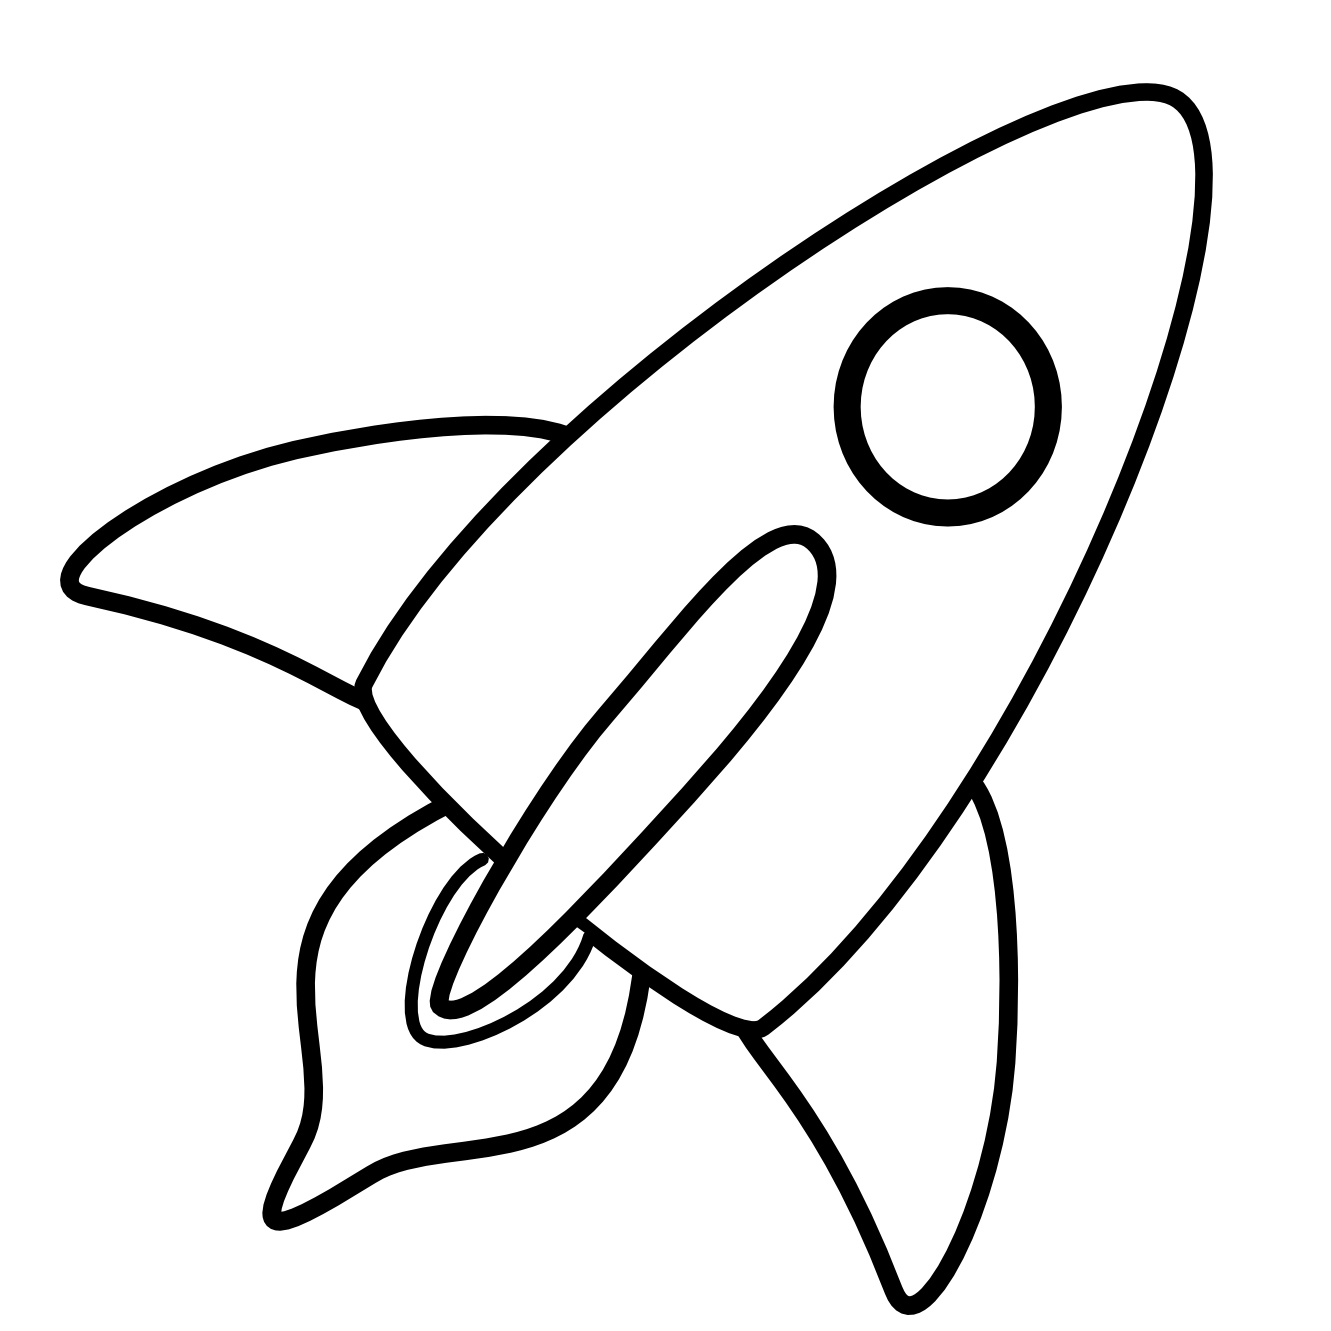 Line Art Rocket : Elbow clipart black and white panda free